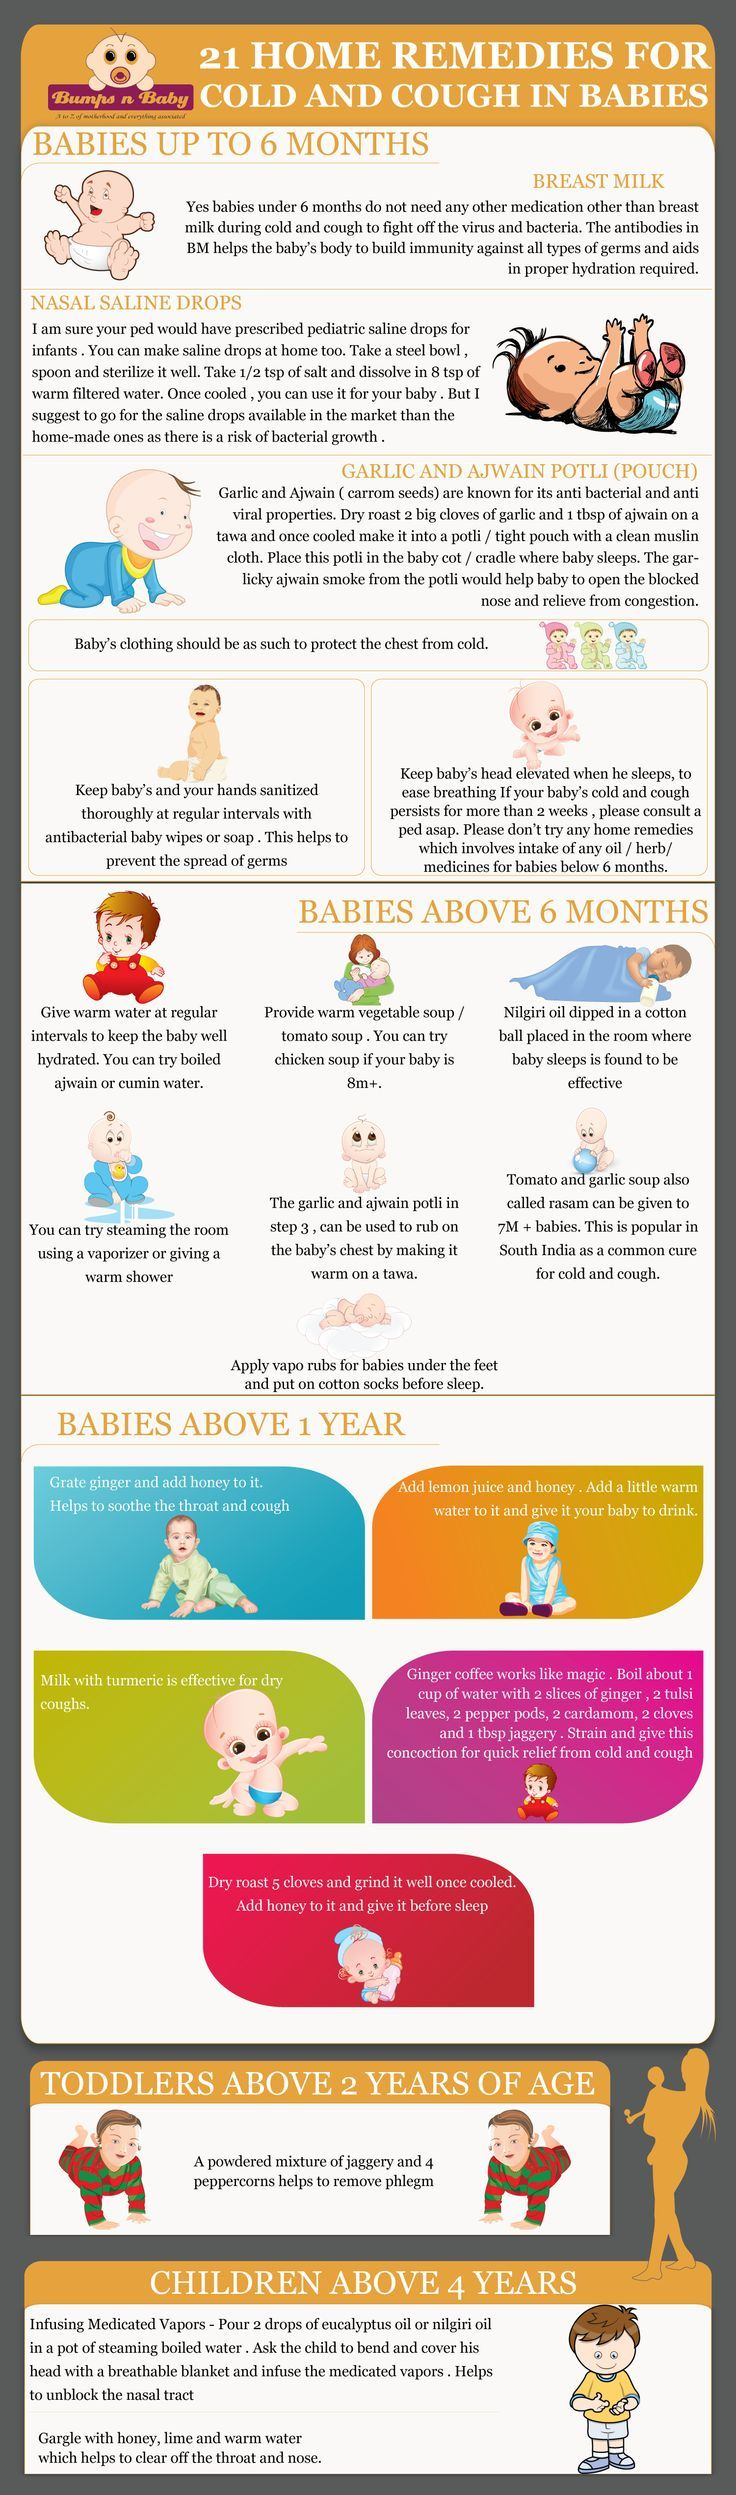 21 home remedies for cold and cough in babies and kids